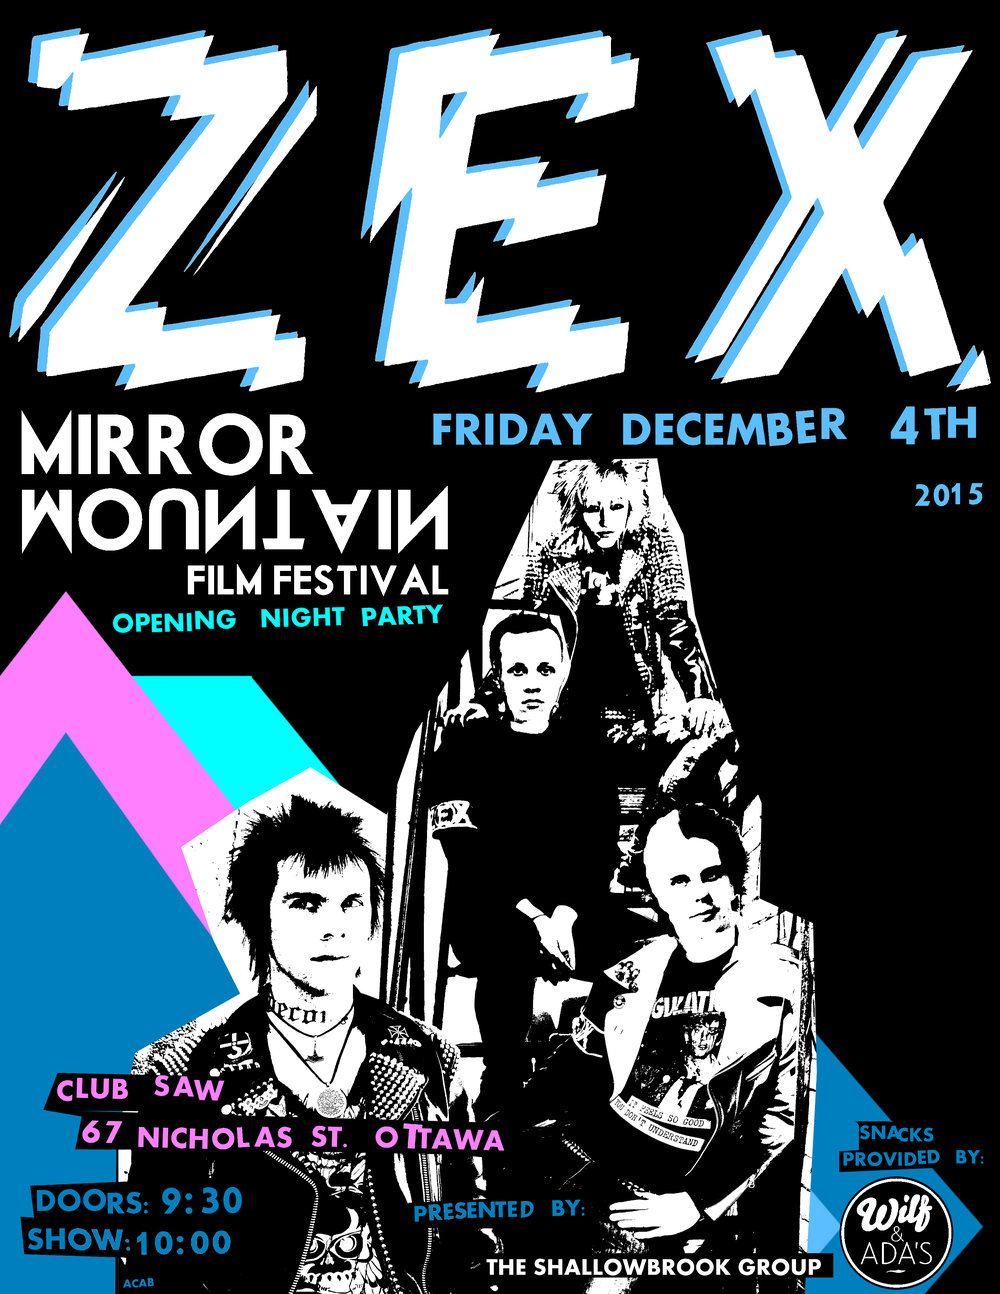 flyer-15.12.04-ottawa-mirrormountainfilmfest.JPG